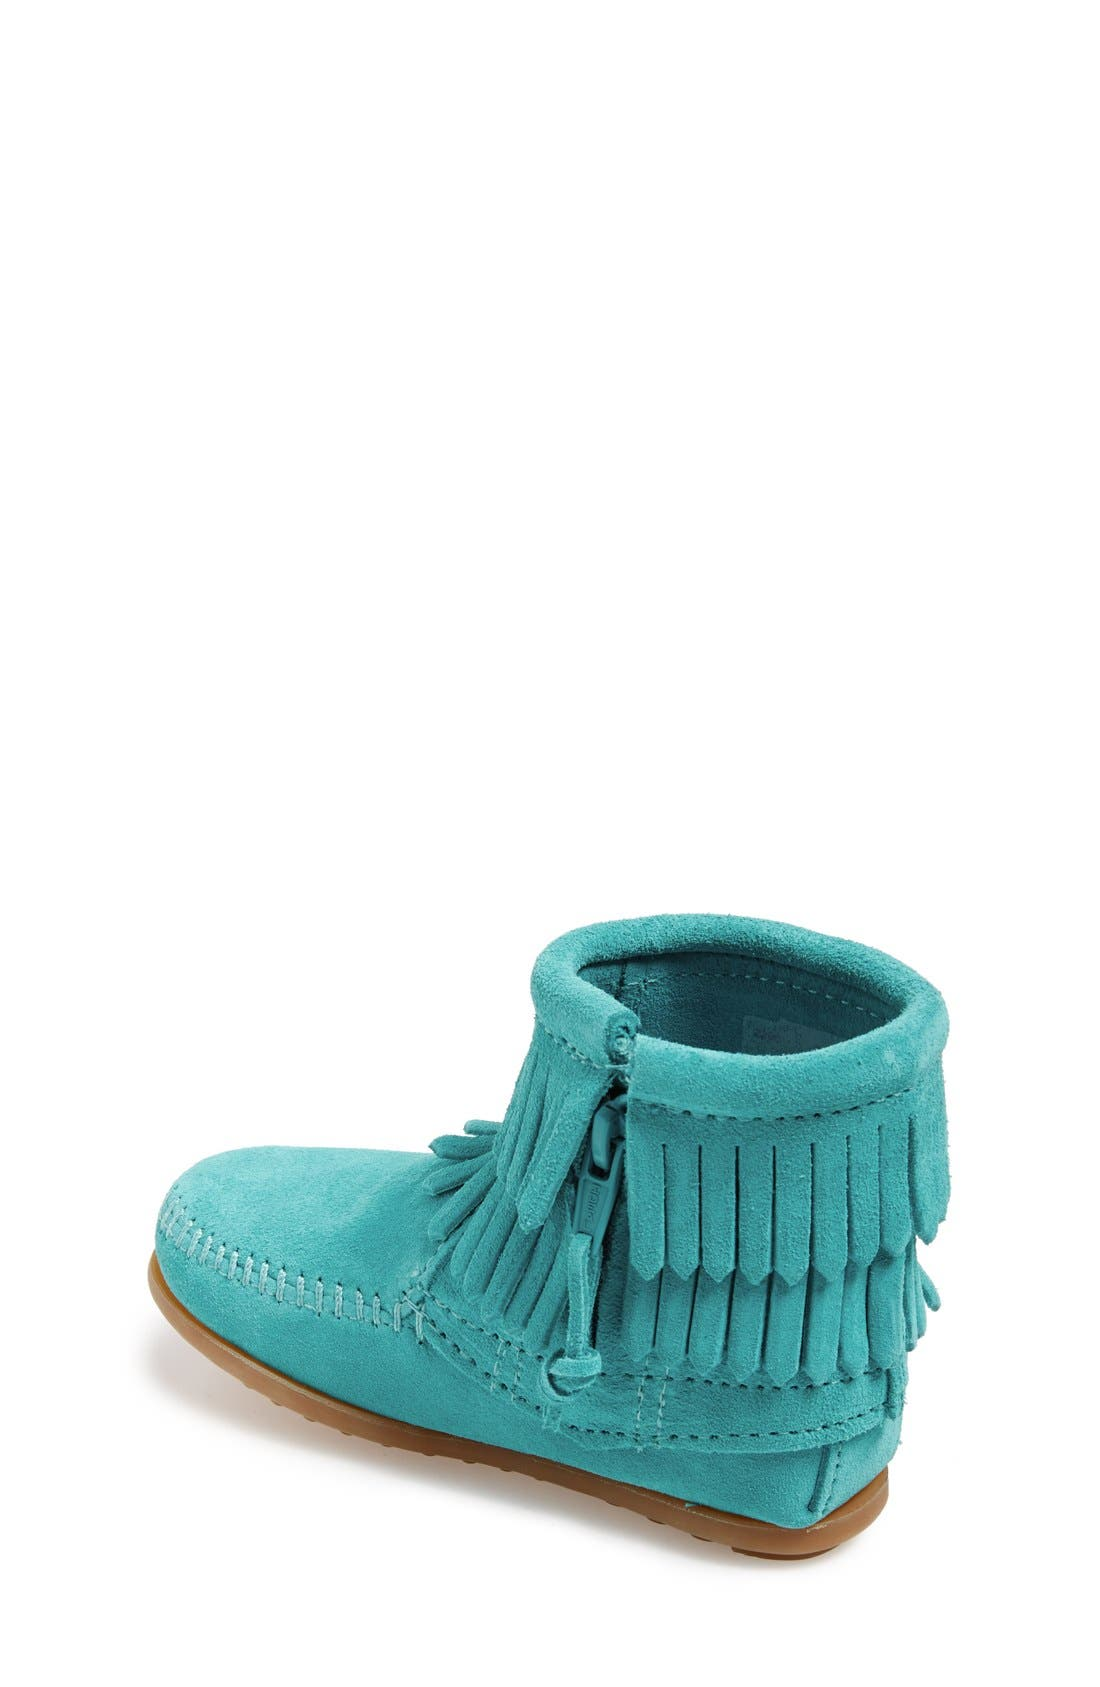 'Double Fringe' Boot,                             Alternate thumbnail 2, color,                             TURQUOISE